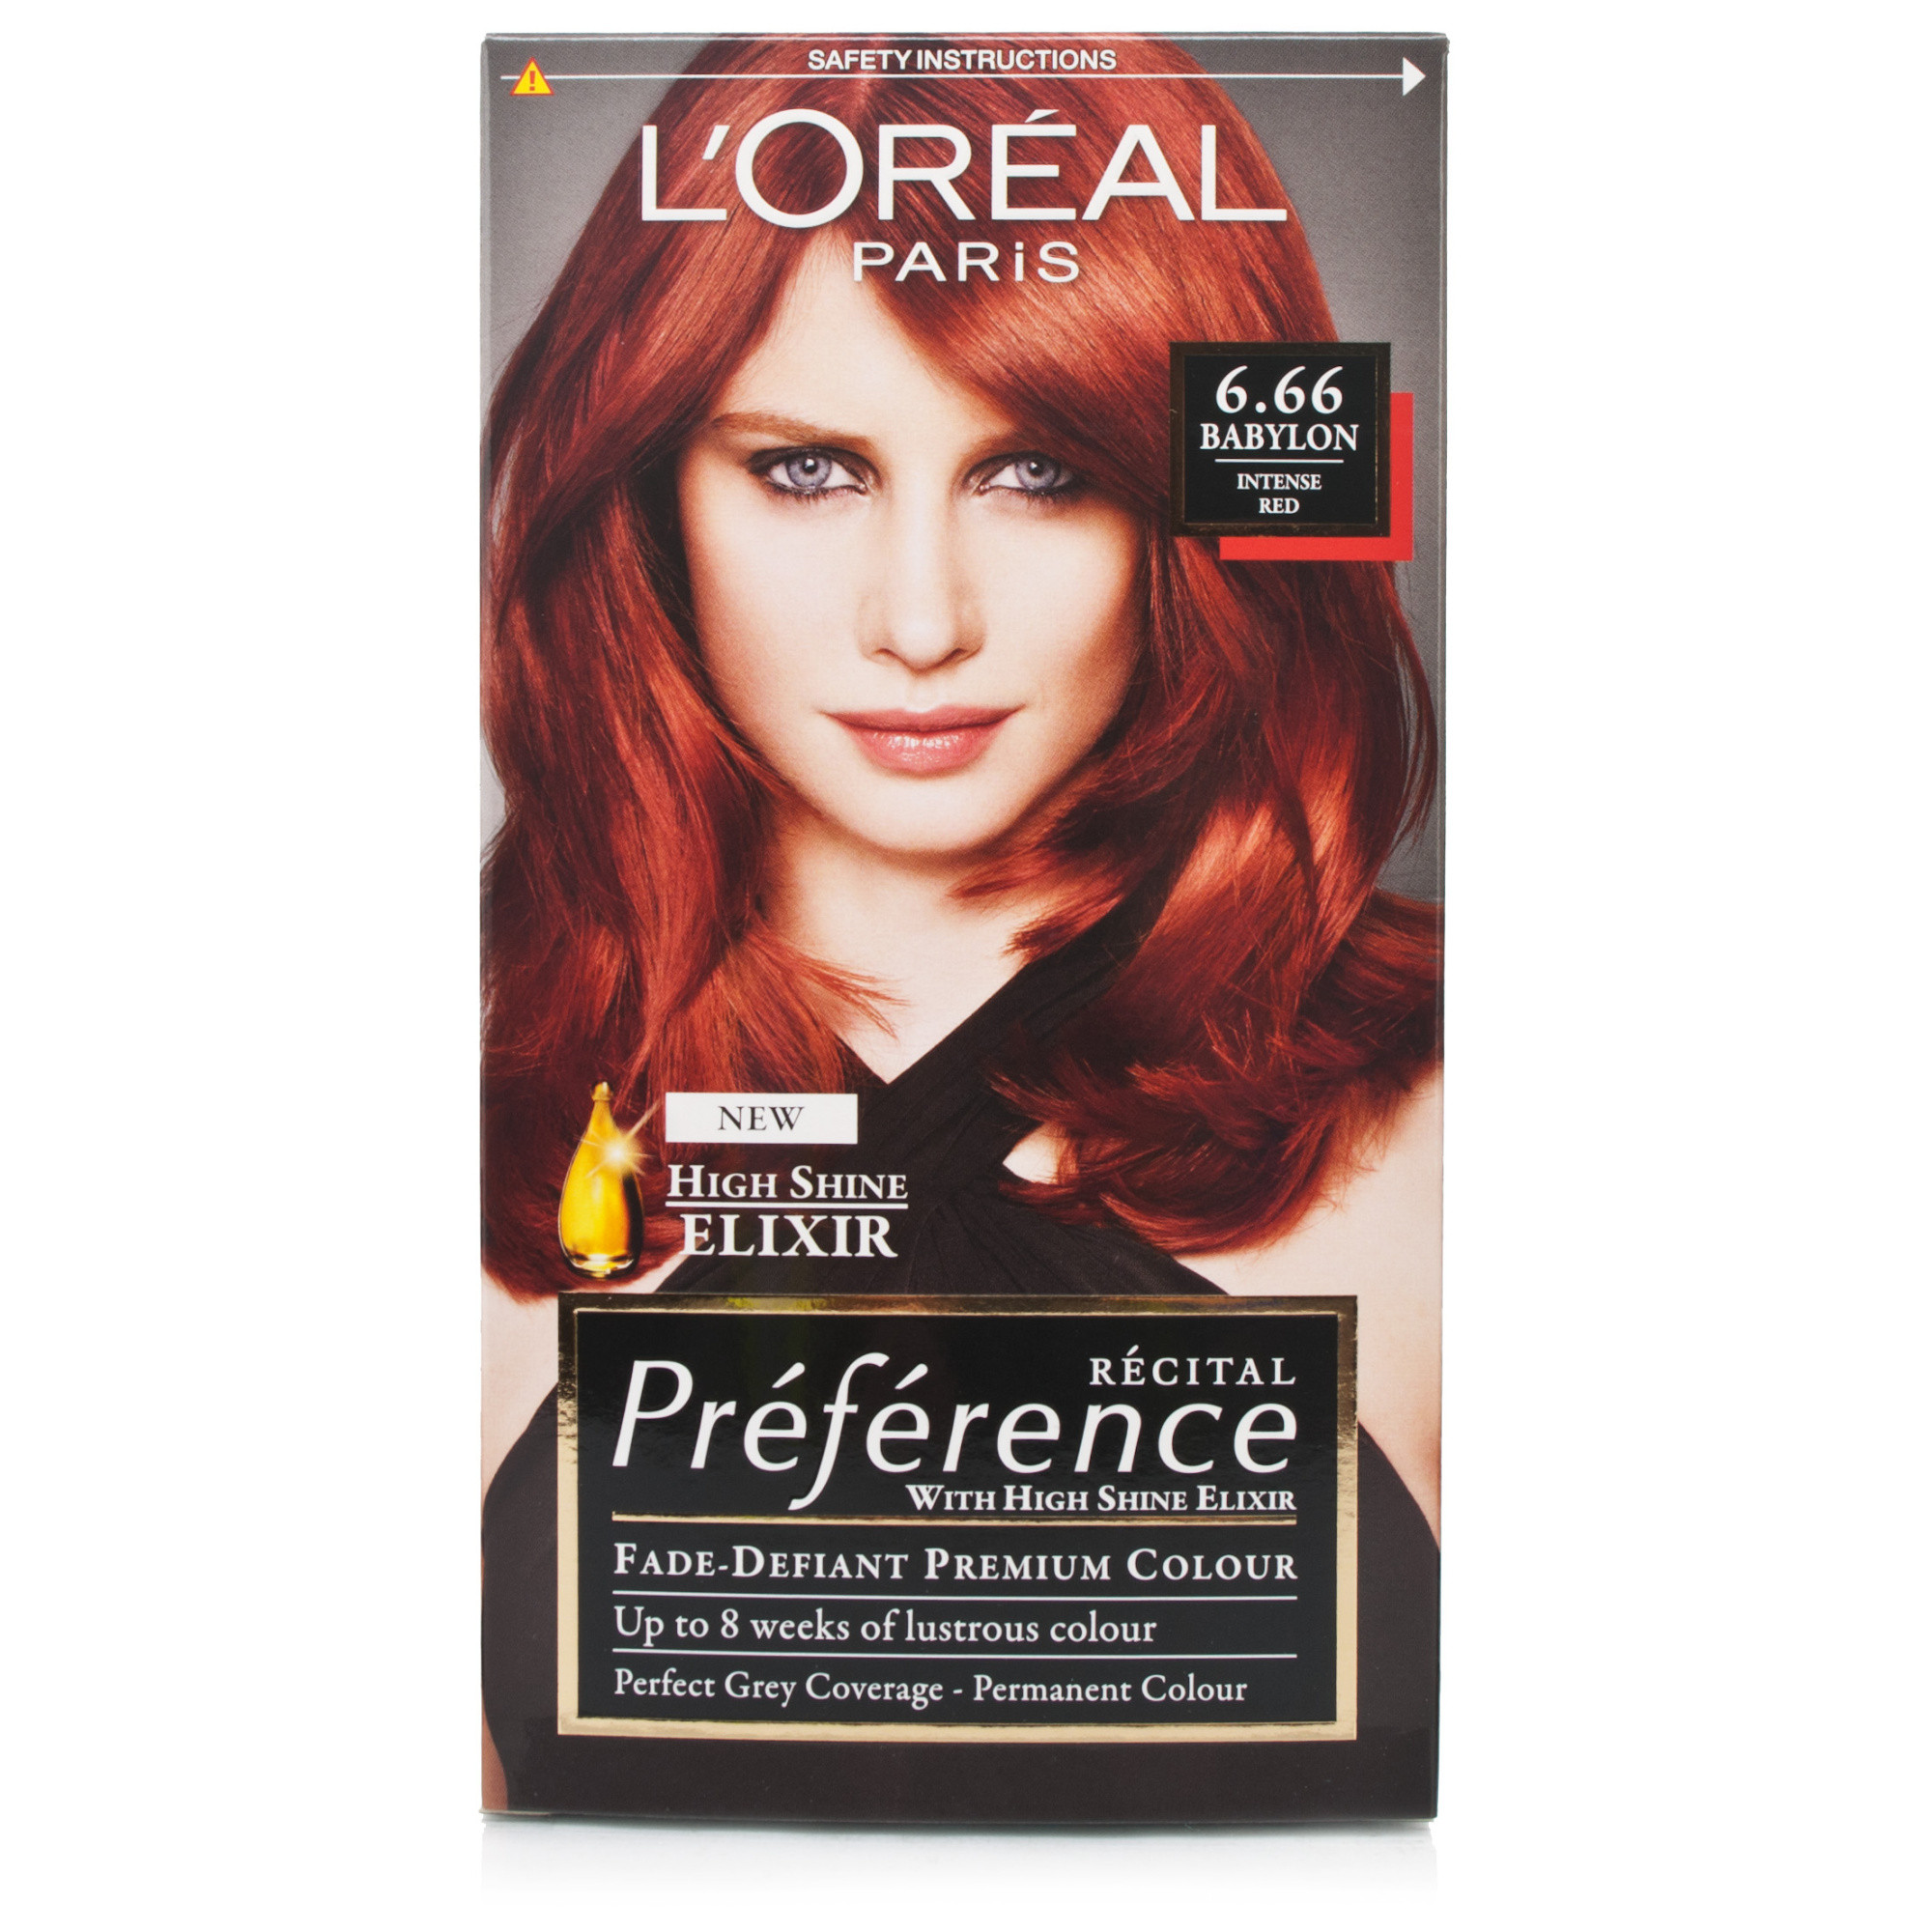 Red l oreal recital preference 6 66 babylon intense red